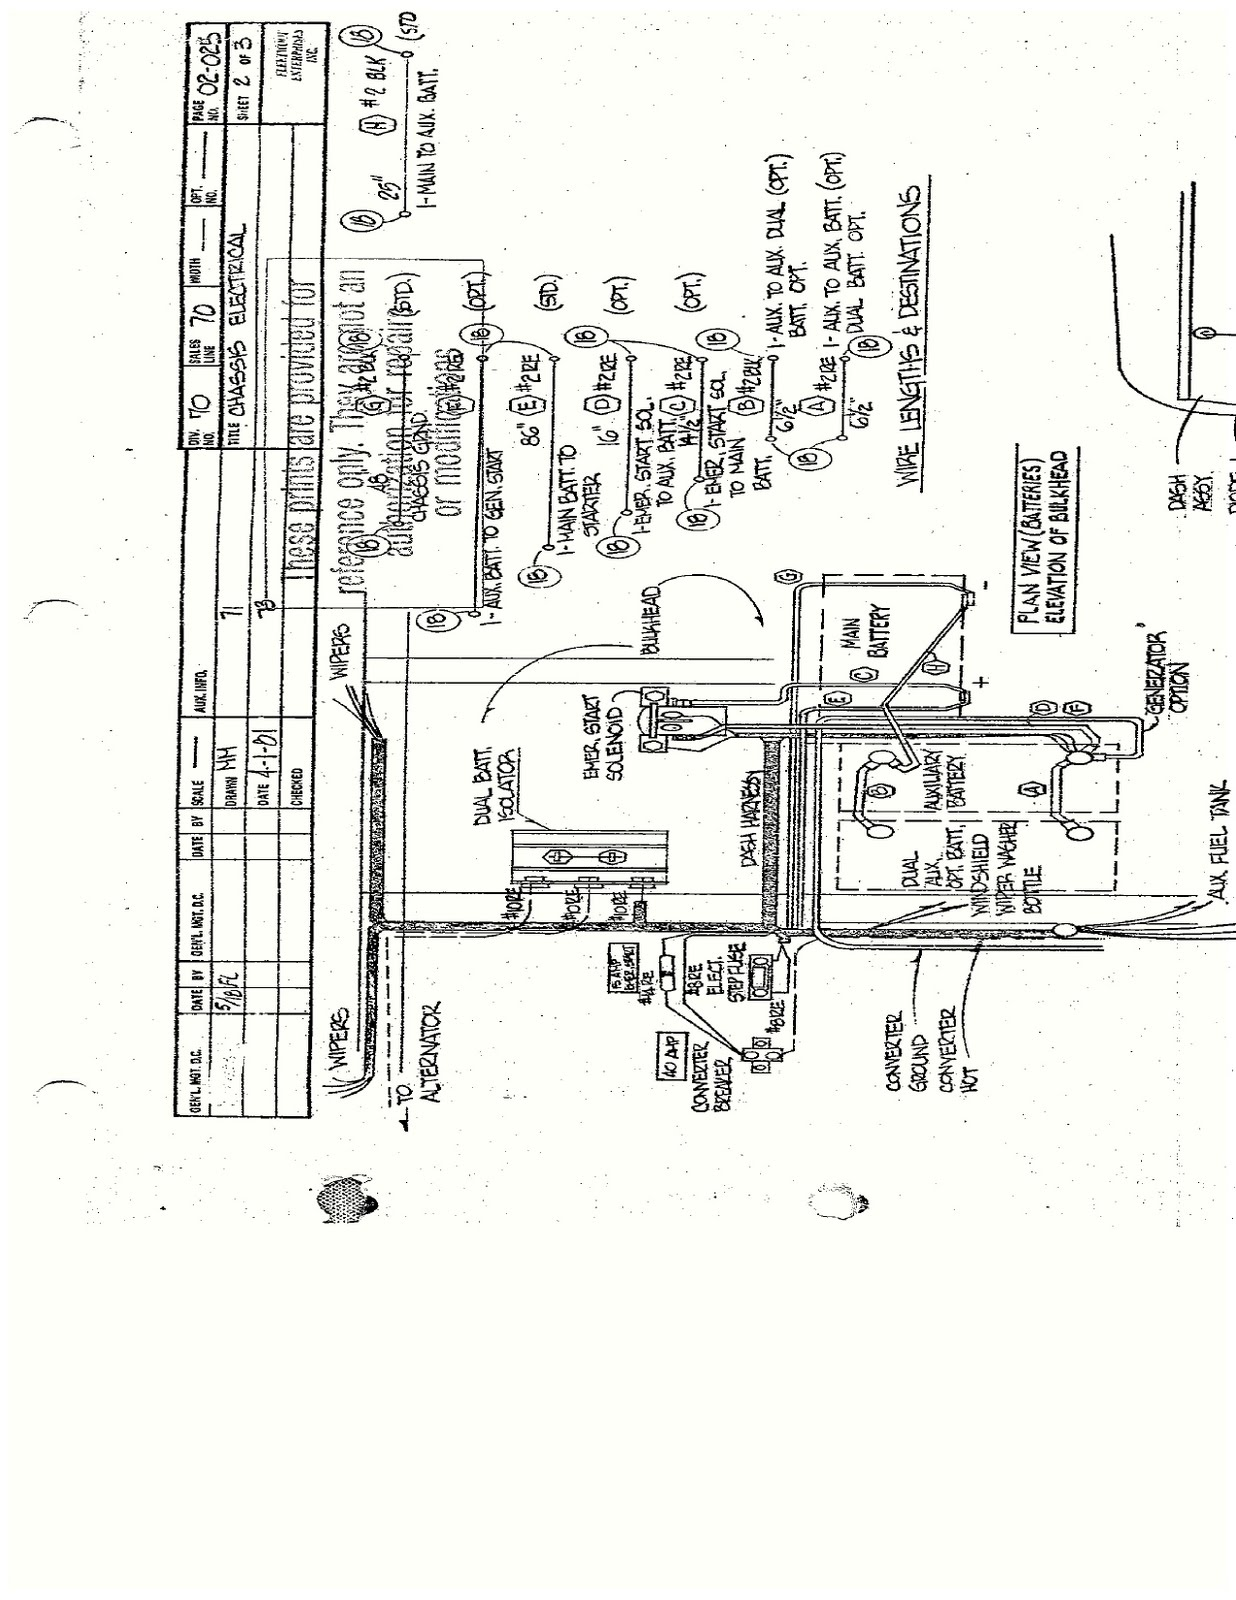 2003 Fleetwood Electrical Schematic Wire Center Bosch Board Electronic Circuit 00415292 From Appliancepartsproscom 1992 Pace Arrow Wiring Diagram Schematics Diagrams U2022 Rh Seniorlivinguniversity Co Bounder